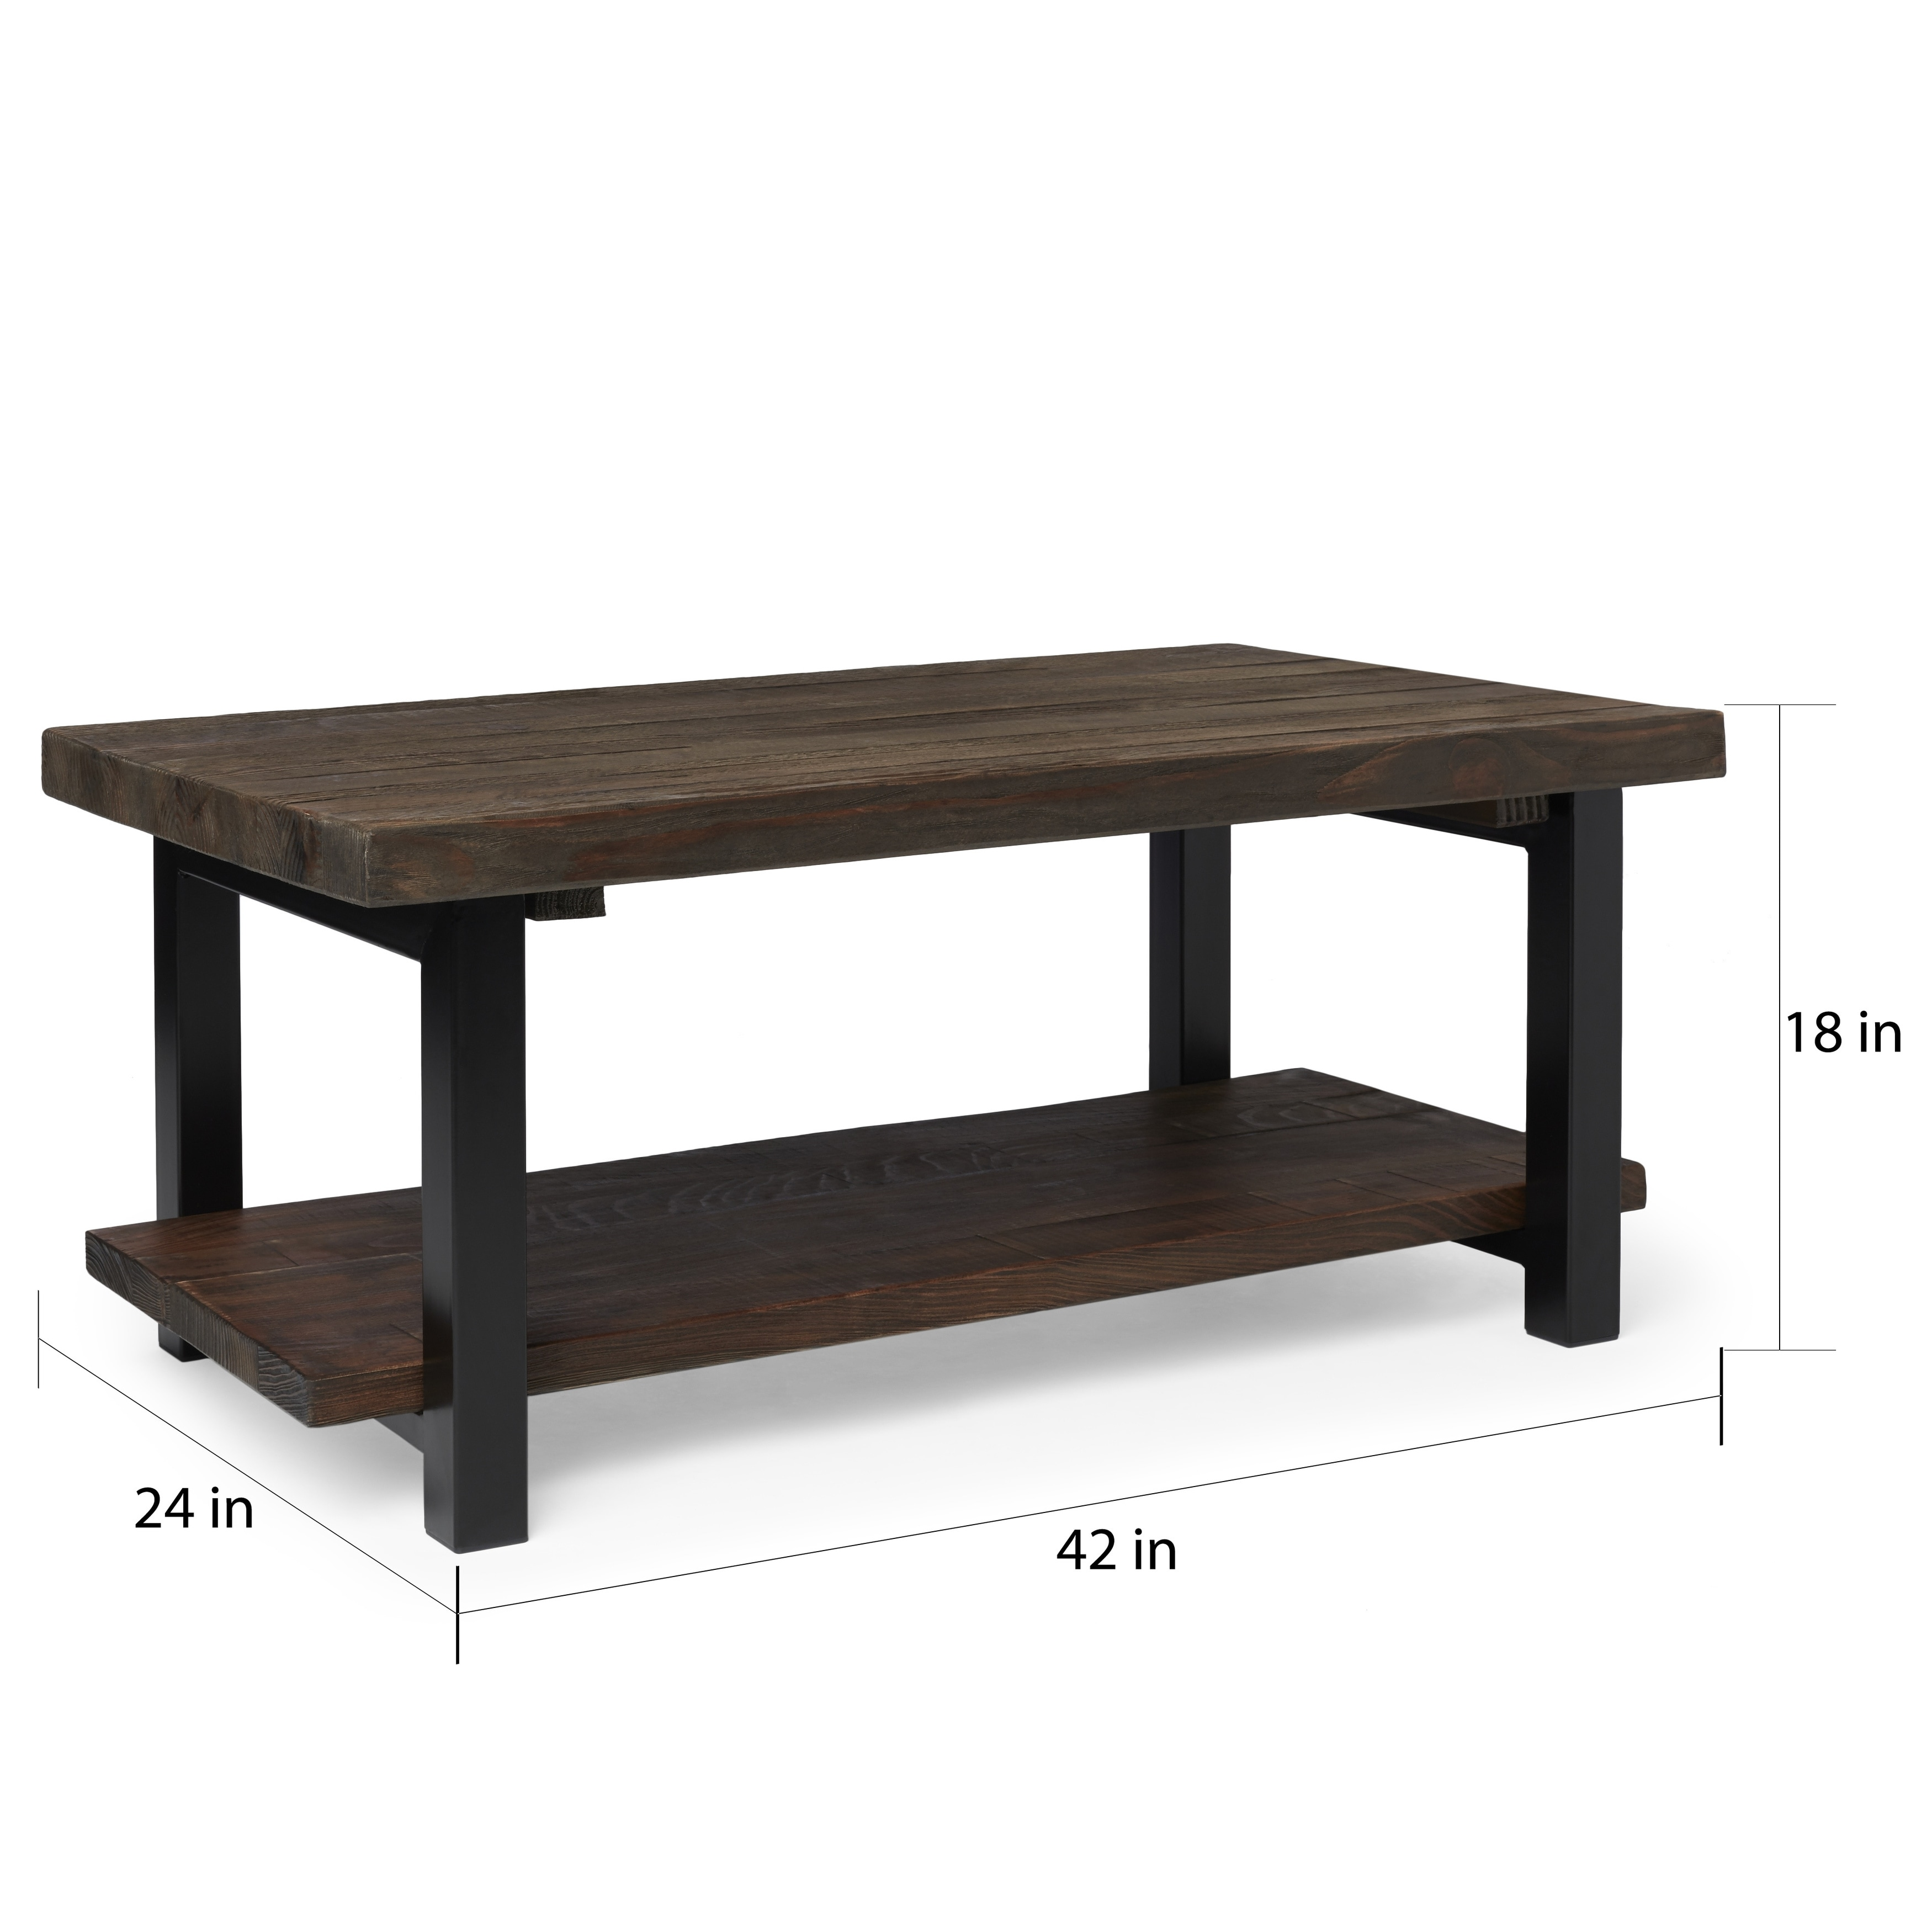 Shop The Gray Barn Michaelis Reclaimed Wood 42 Inch Coffee Table   On Sale    Free Shipping Today   Overstock.com   20306435